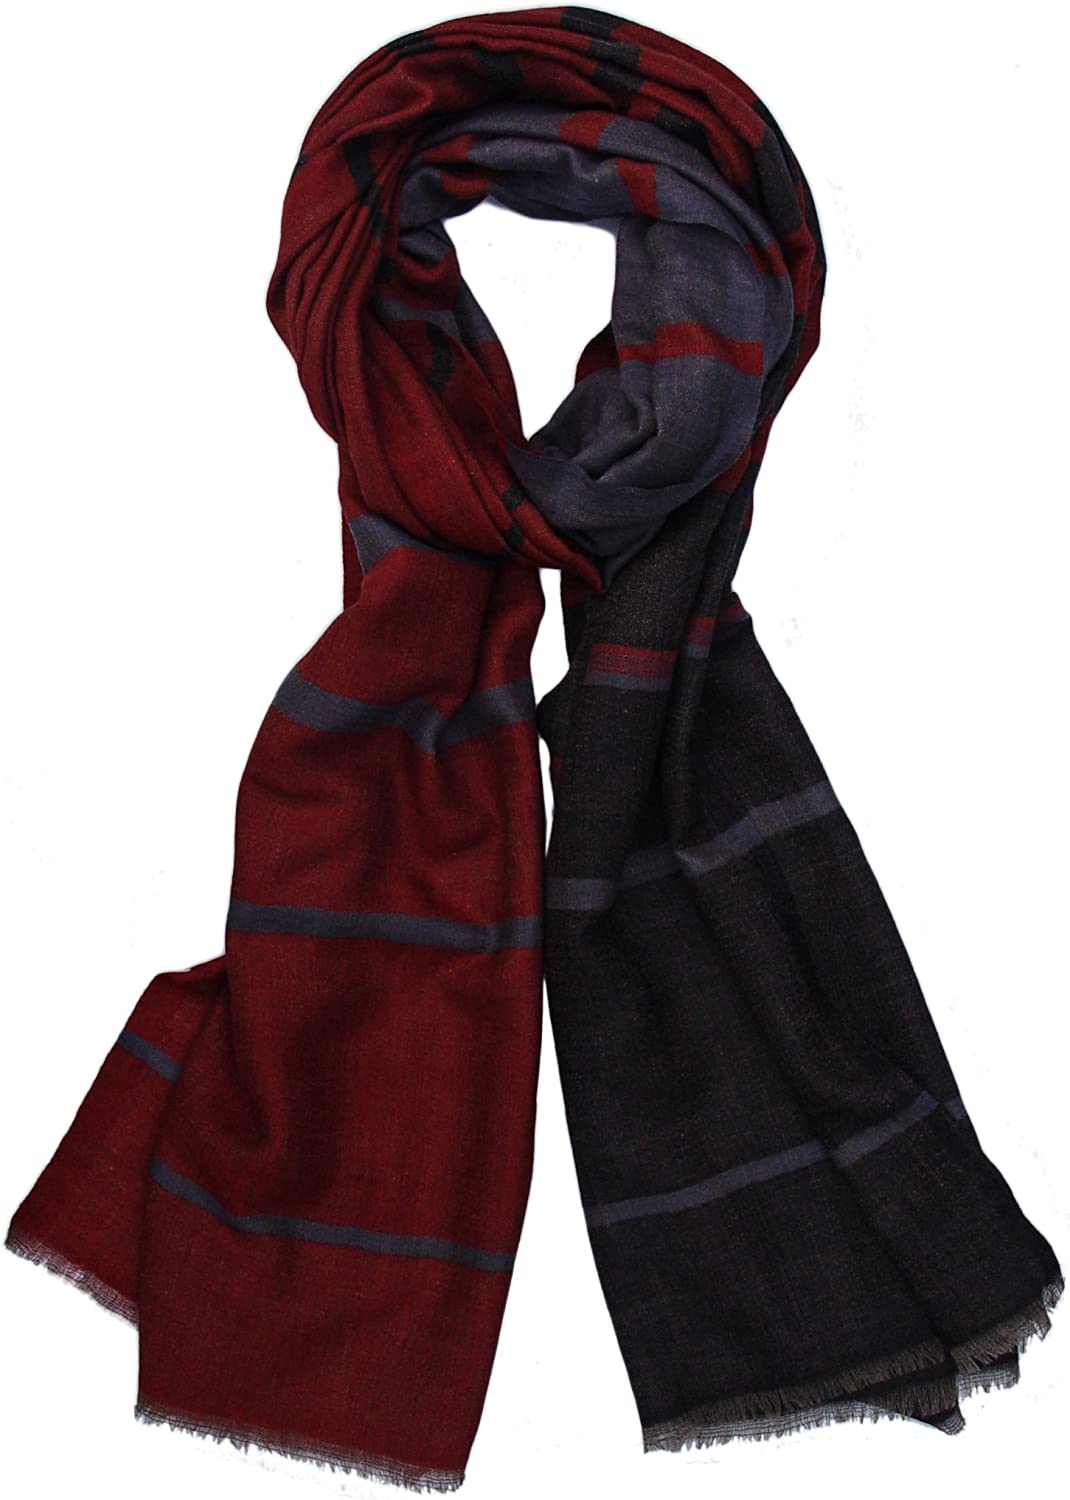 Pure Cashmere Unisex Scarf Wrap Stole Shawl in Check Plaid Stripe Design